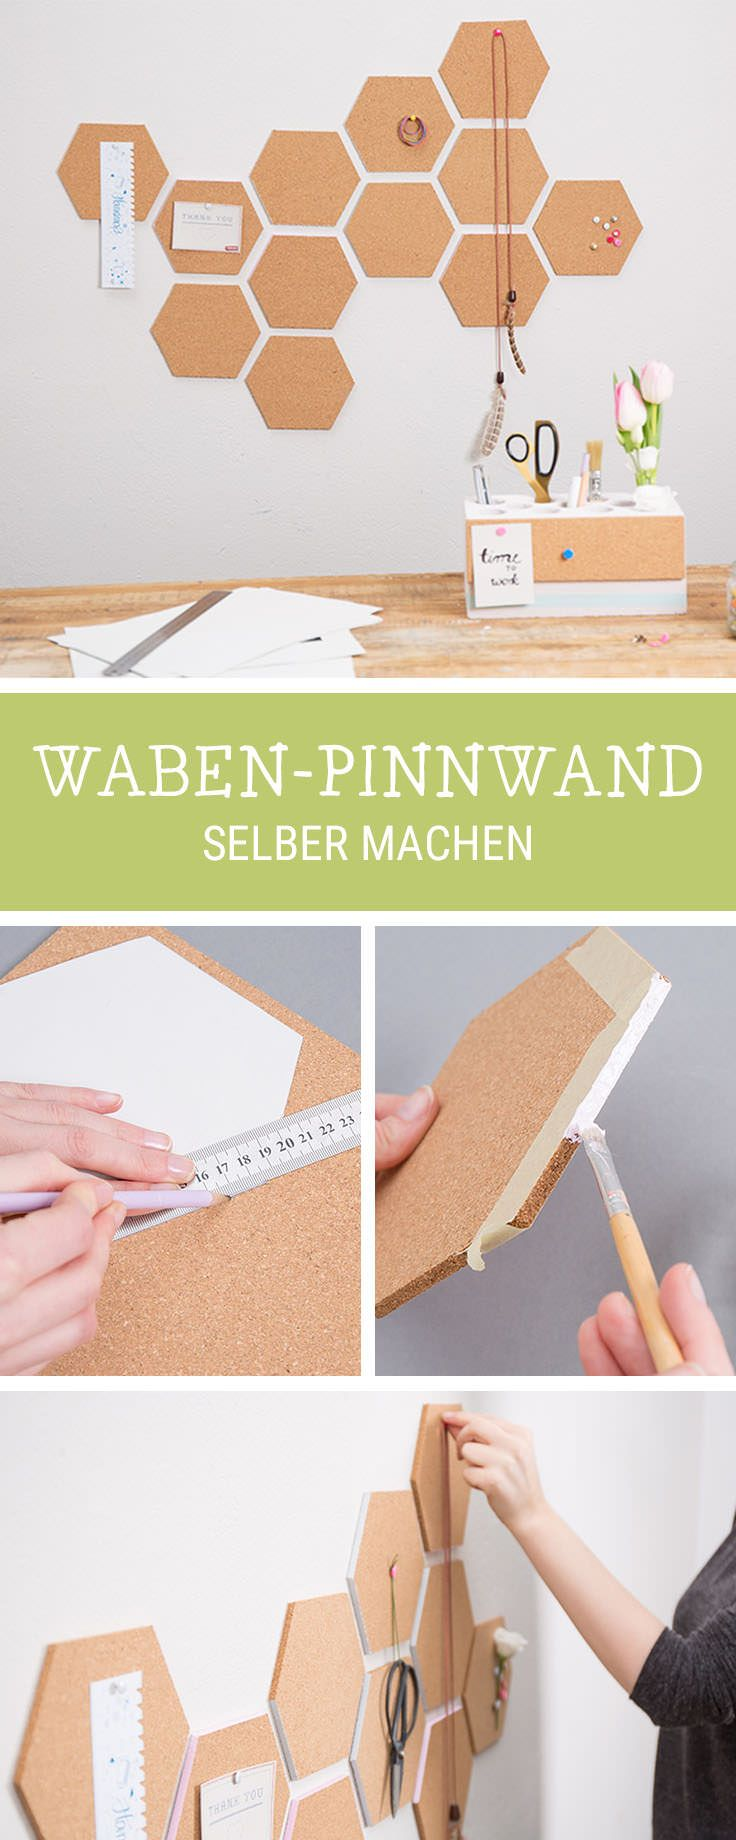 Pinnwand aus Kork in Wabenform basteln: DIY-Idee fürs Arbeitszimmer  / workspace decoration: cork pinboard in shape of honeycombs via DaWanda.com